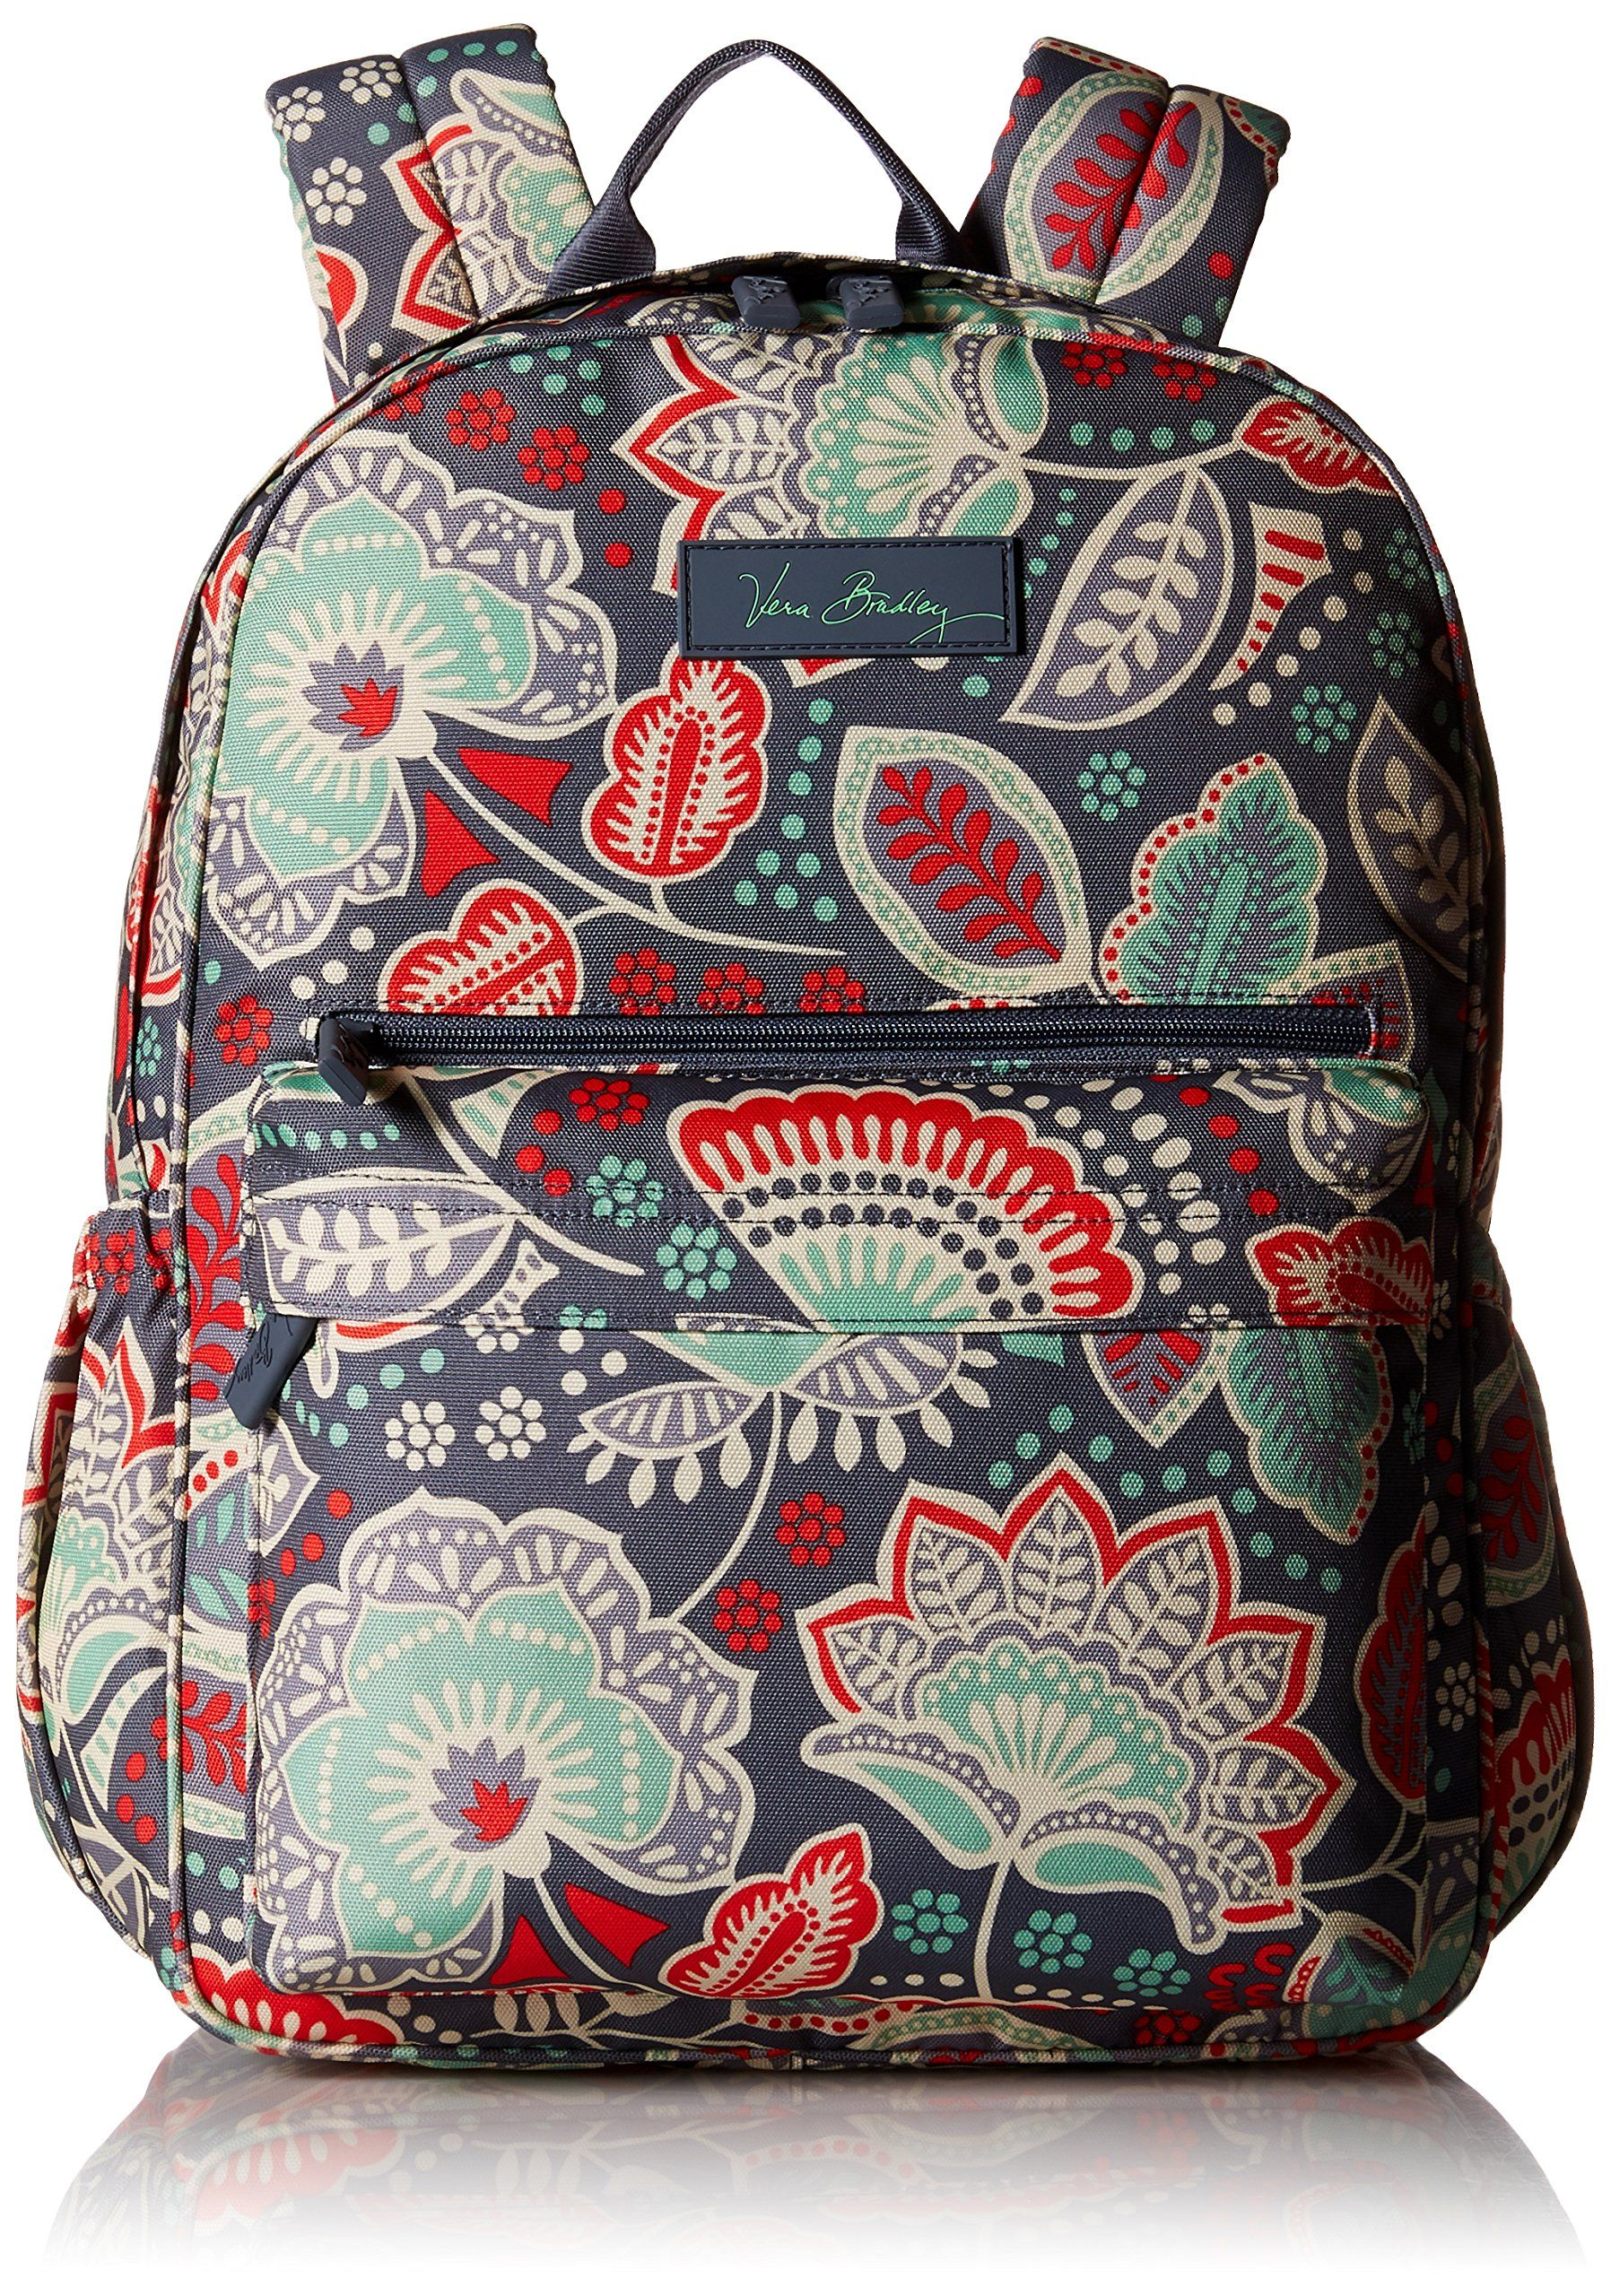 ca414b4d26 Vera Bradley Women s Lighten up Just Right Backpack